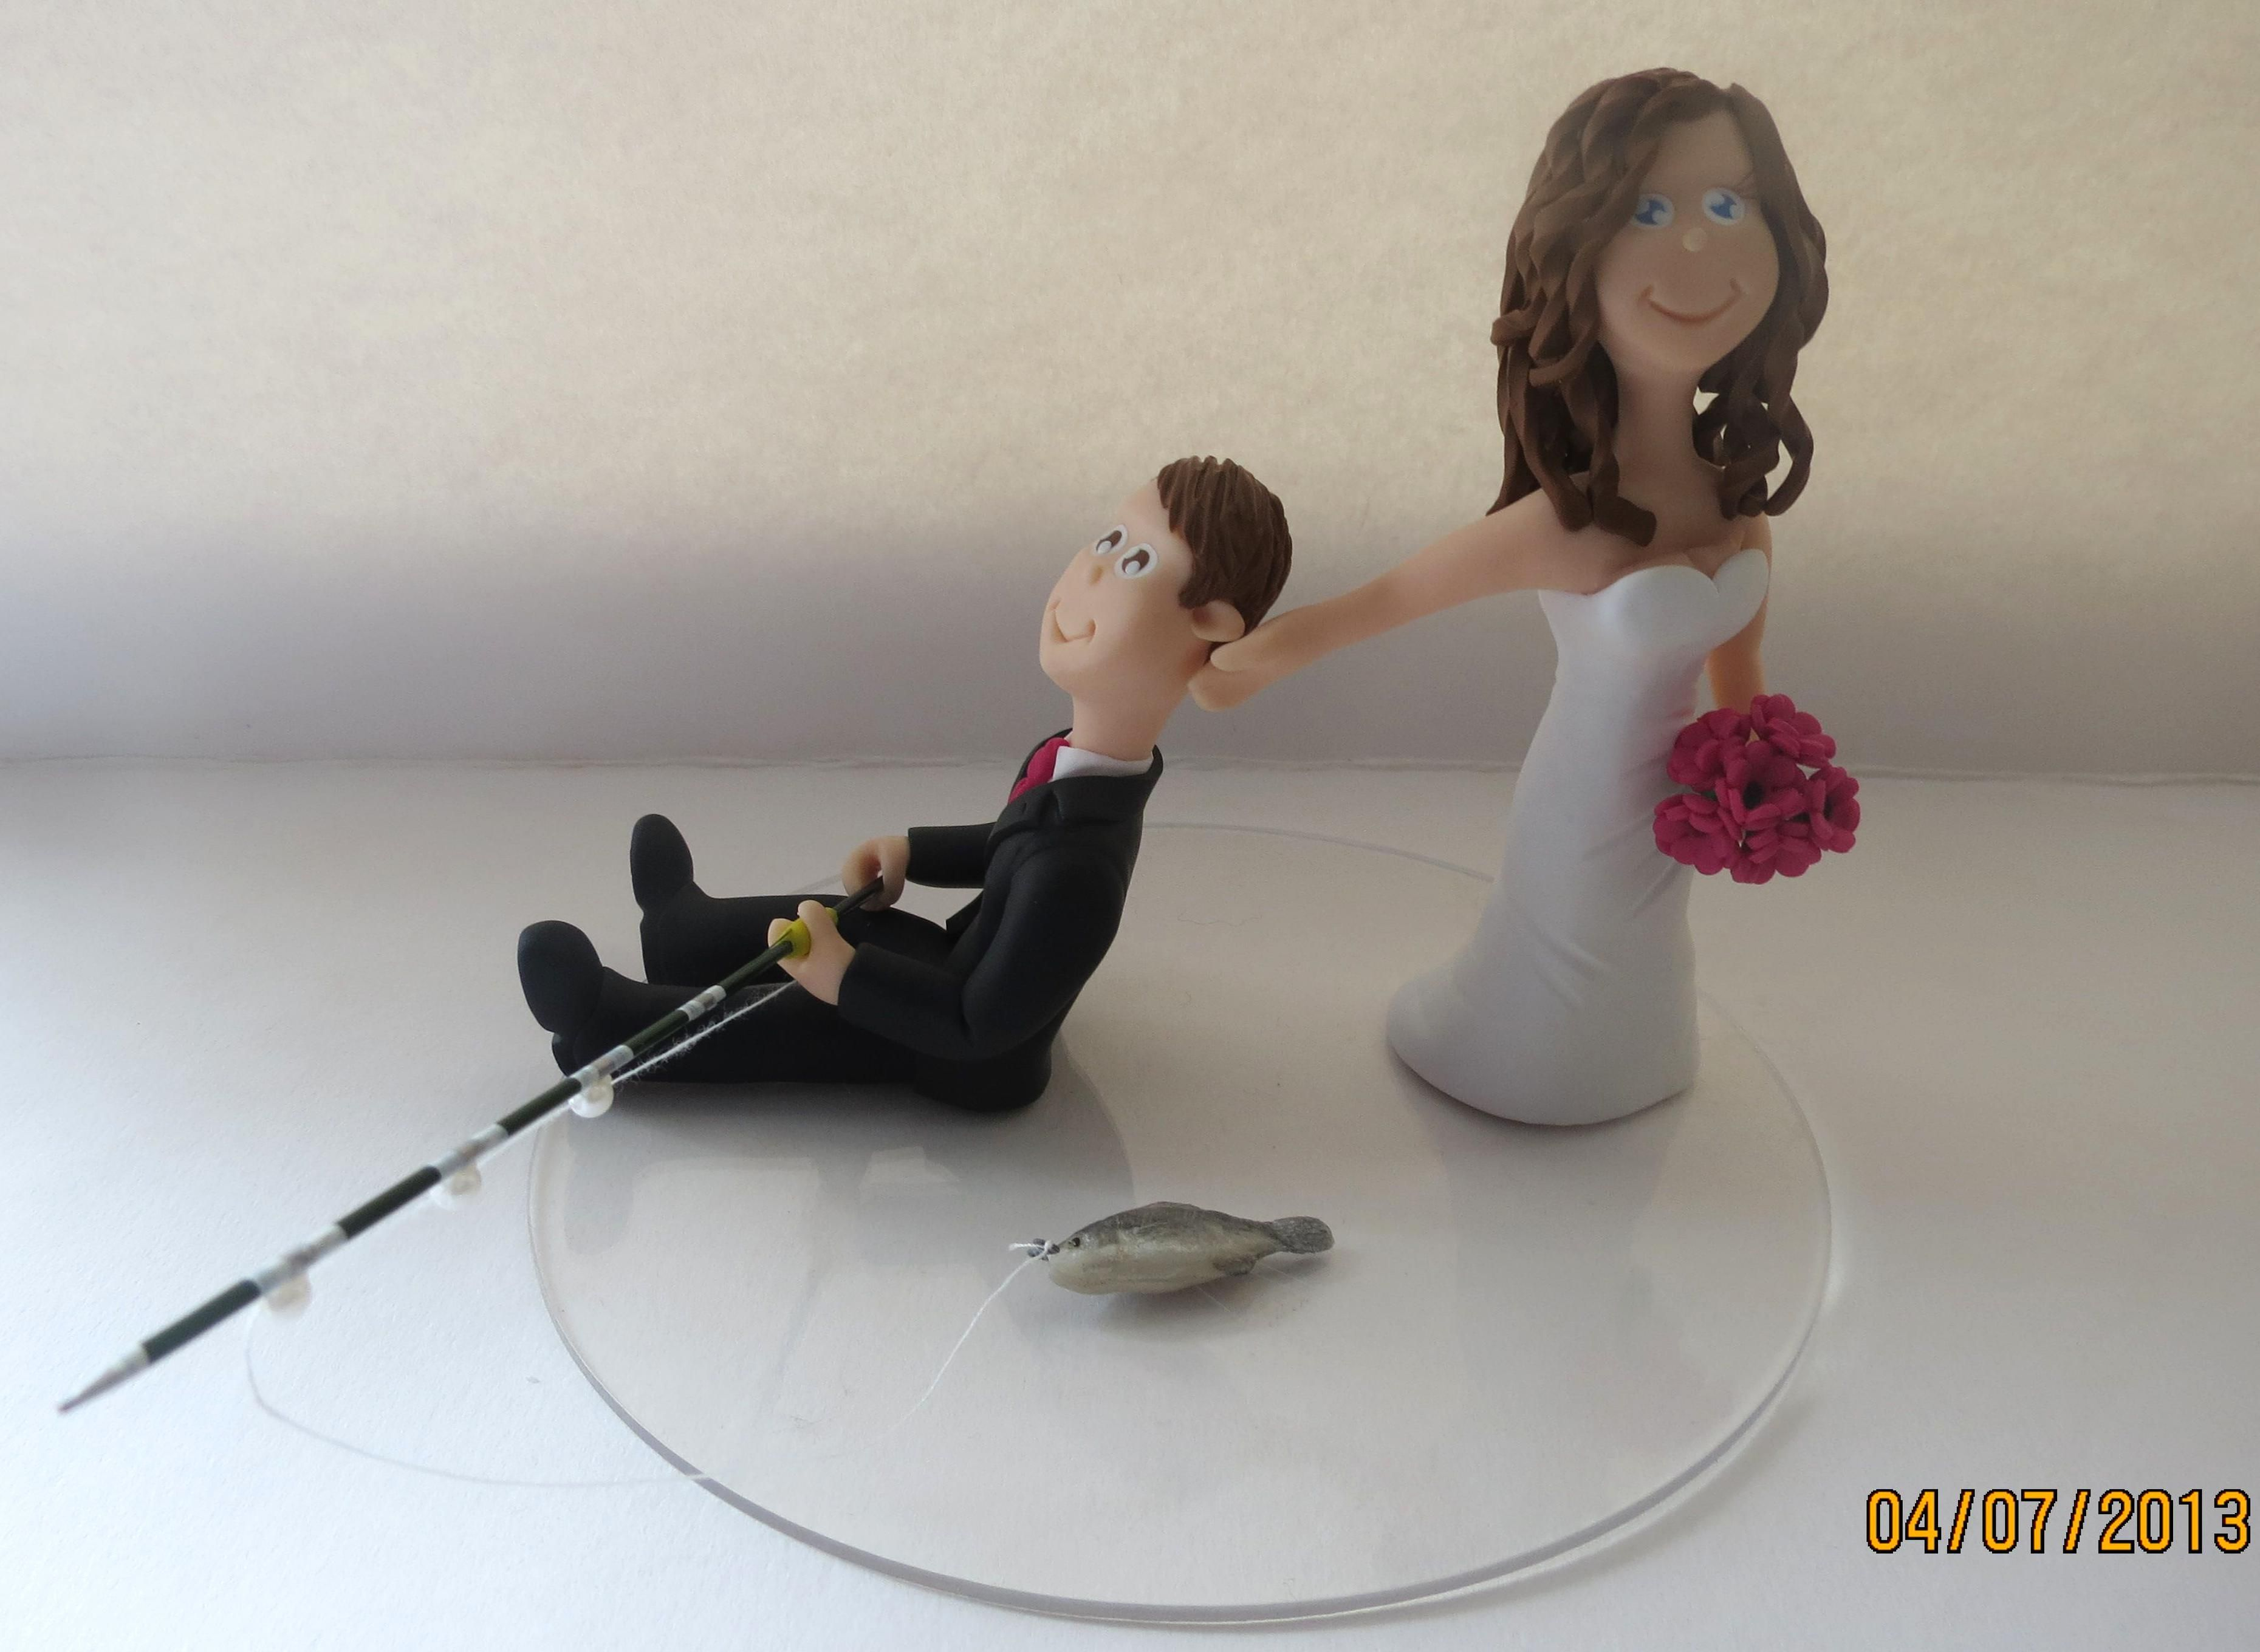 Personalised Wedding Cake Topper Made To Order All Military Toppers Discounted In 2020 Wedding Cake Toppers Personalized Wedding Cake Toppers Wedding Cakes